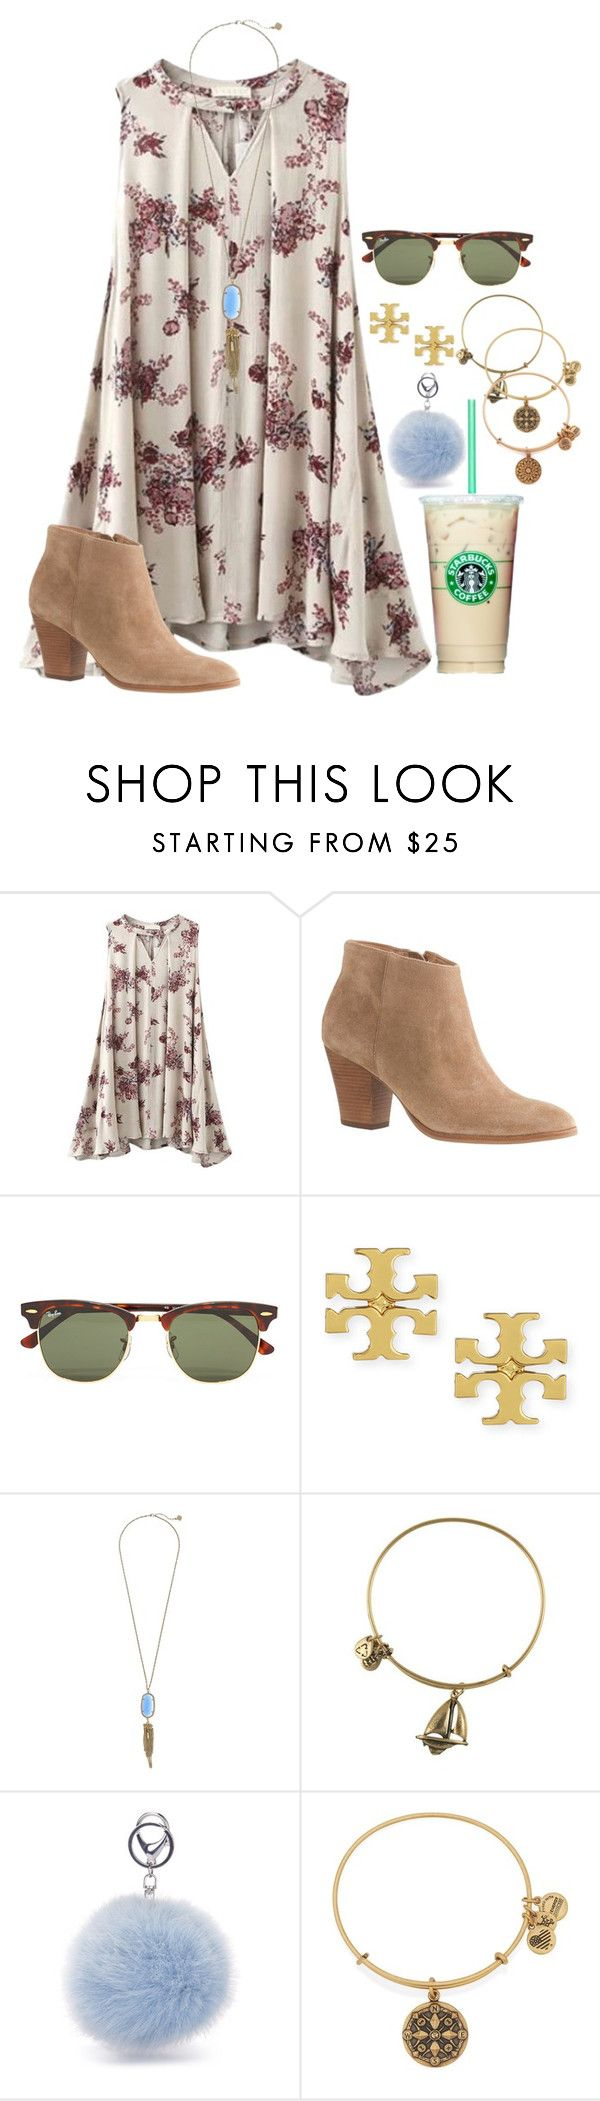 """~I mean the bear necessities, the simple bear necessities of life~"" by flroasburn ❤ liked on Polyvore featuring J.Crew, Ray-Ban, Tory Burch, Kendra Scott and Alex and Ani"